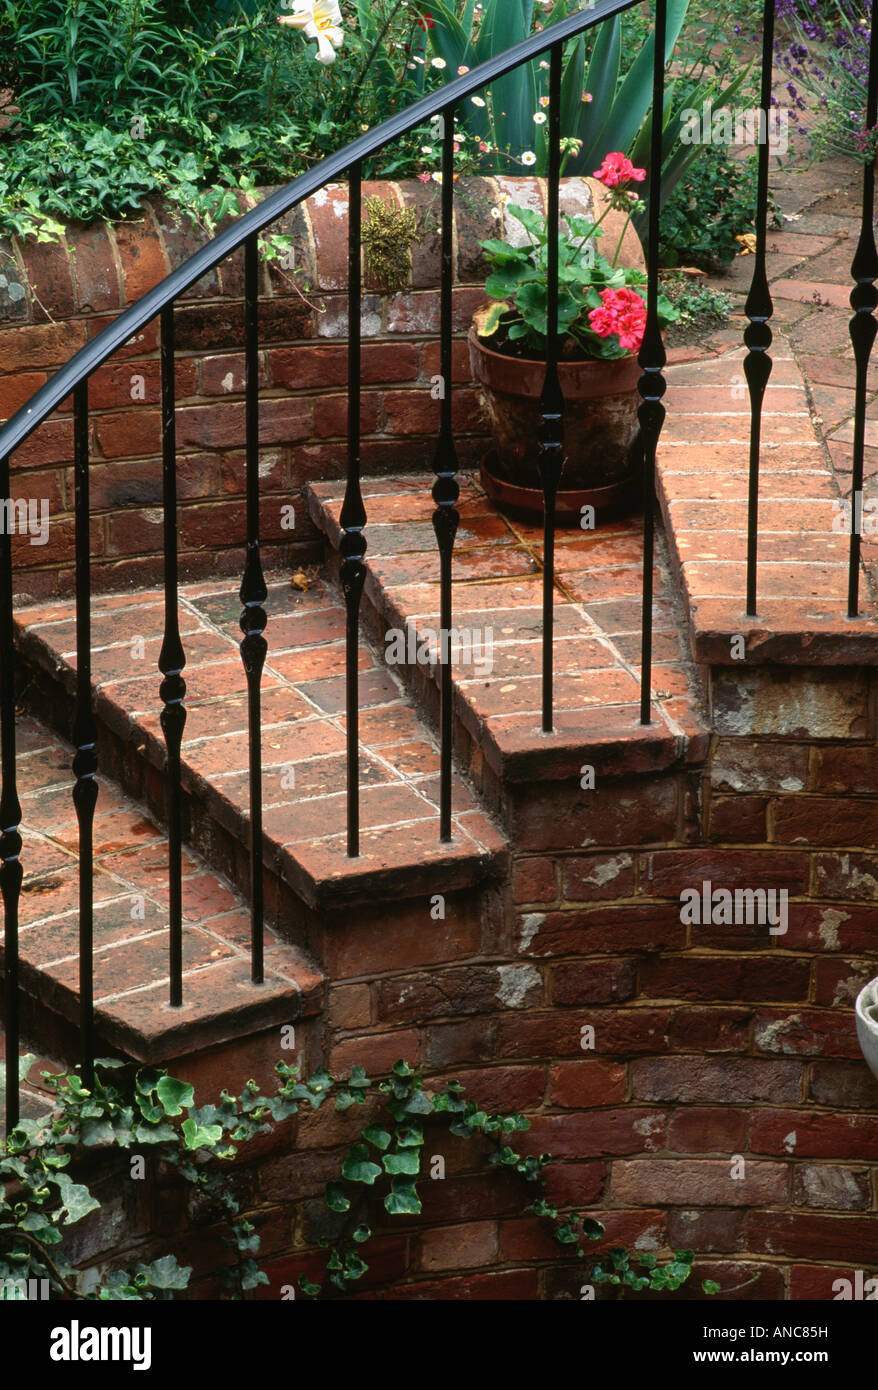 Close up of brick steps and black cast iron railings in town garden - Stock Image